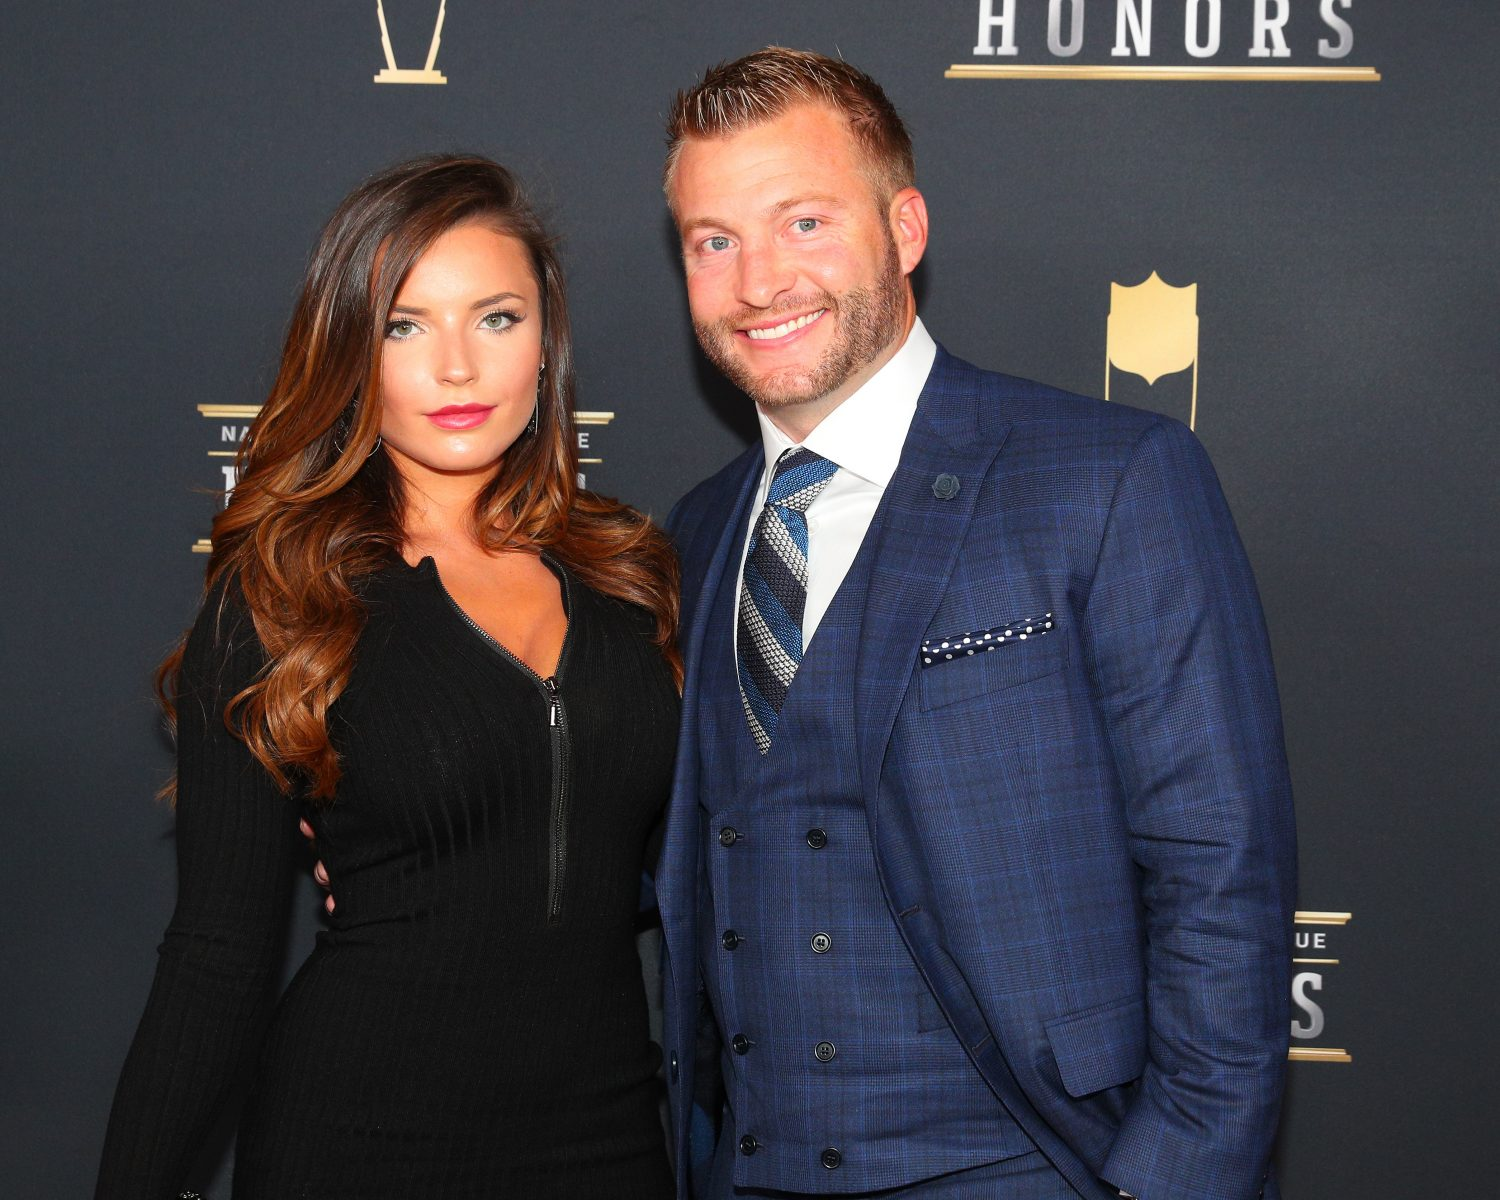 Nfl Coach Sean Mcvay Is Engaged To Veronika Khomyn